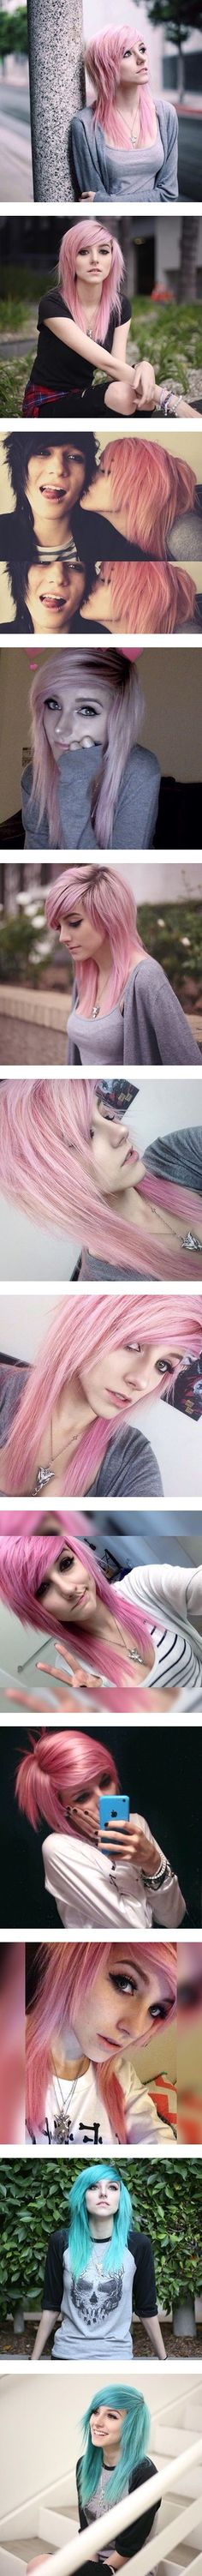 ▬ Alex Dorame ▬ – Women's jewelry and accessories- ▬ Alex D… – Emo fashion Dyed Hair Pastel, Pink Hair, Pelo Emo, Alex Dorame, Emo Scene Hair, Cute Emo, Alternative Hair, Punk, Scene Girls